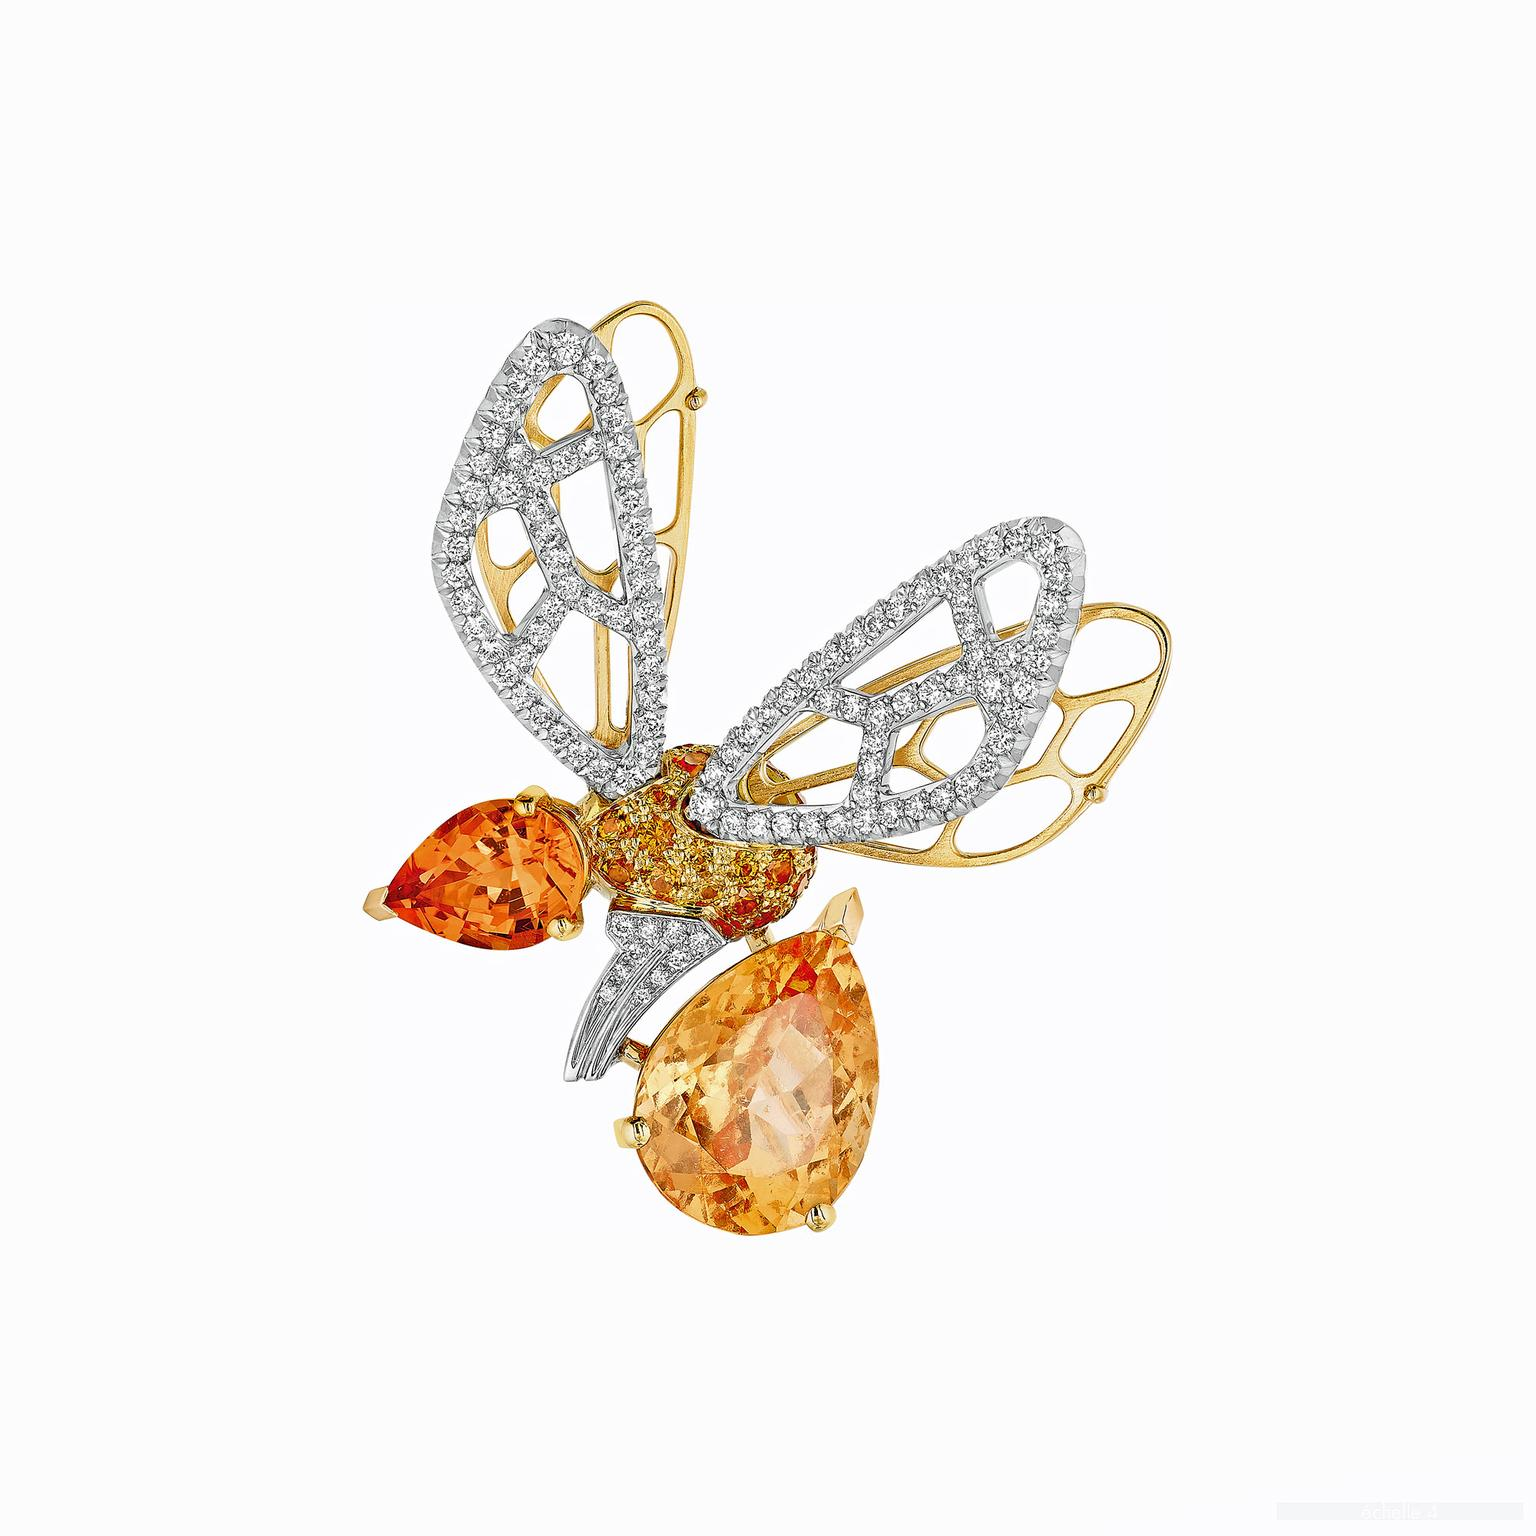 Chaumet Abeille orange tourmaline and hessonite garnet brooch